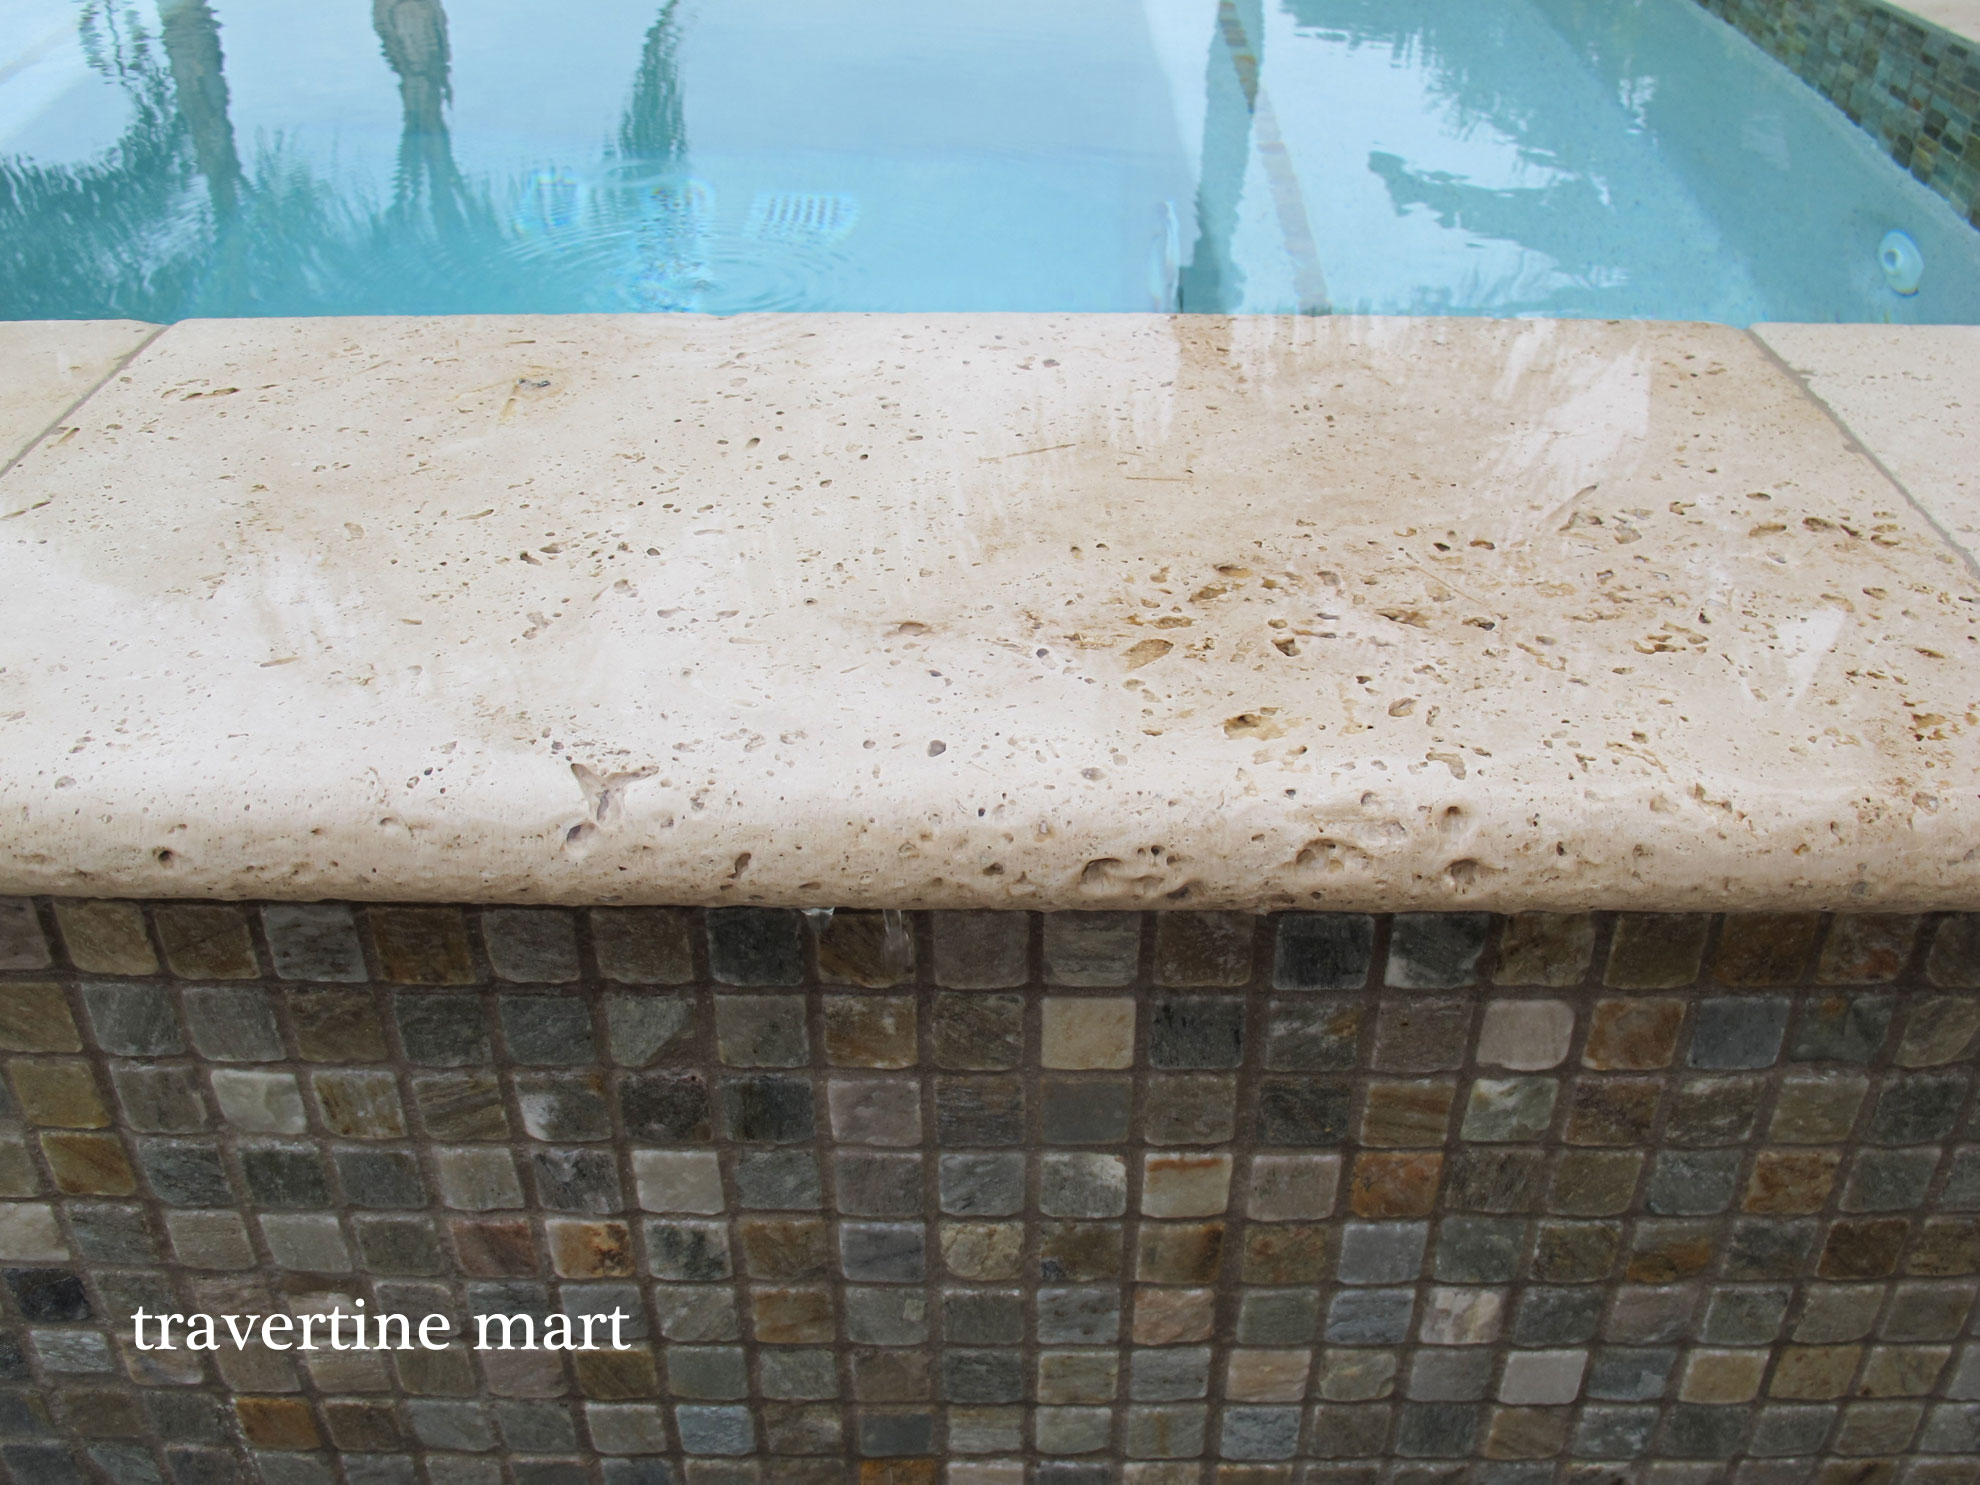 saltwatererosiontravertine